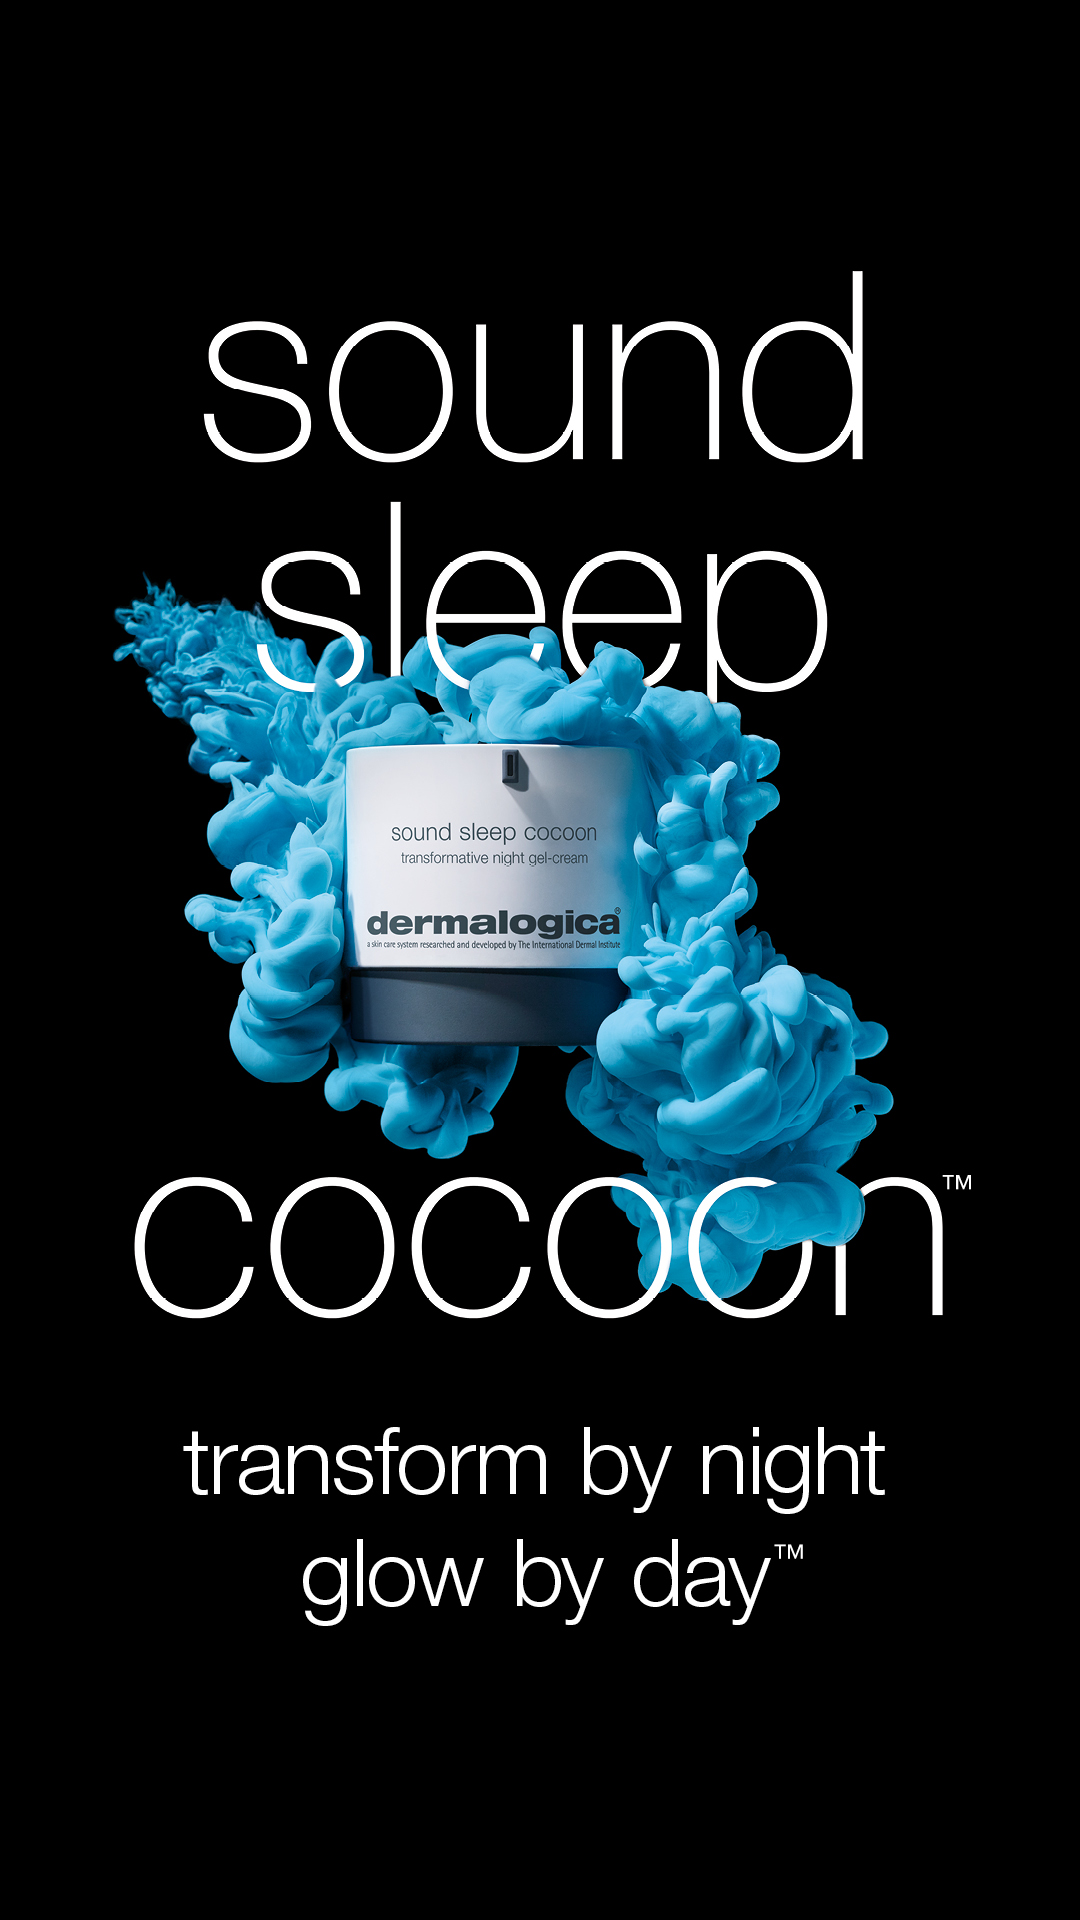 Coming soon sound sleep cocoon from Dermalogica.